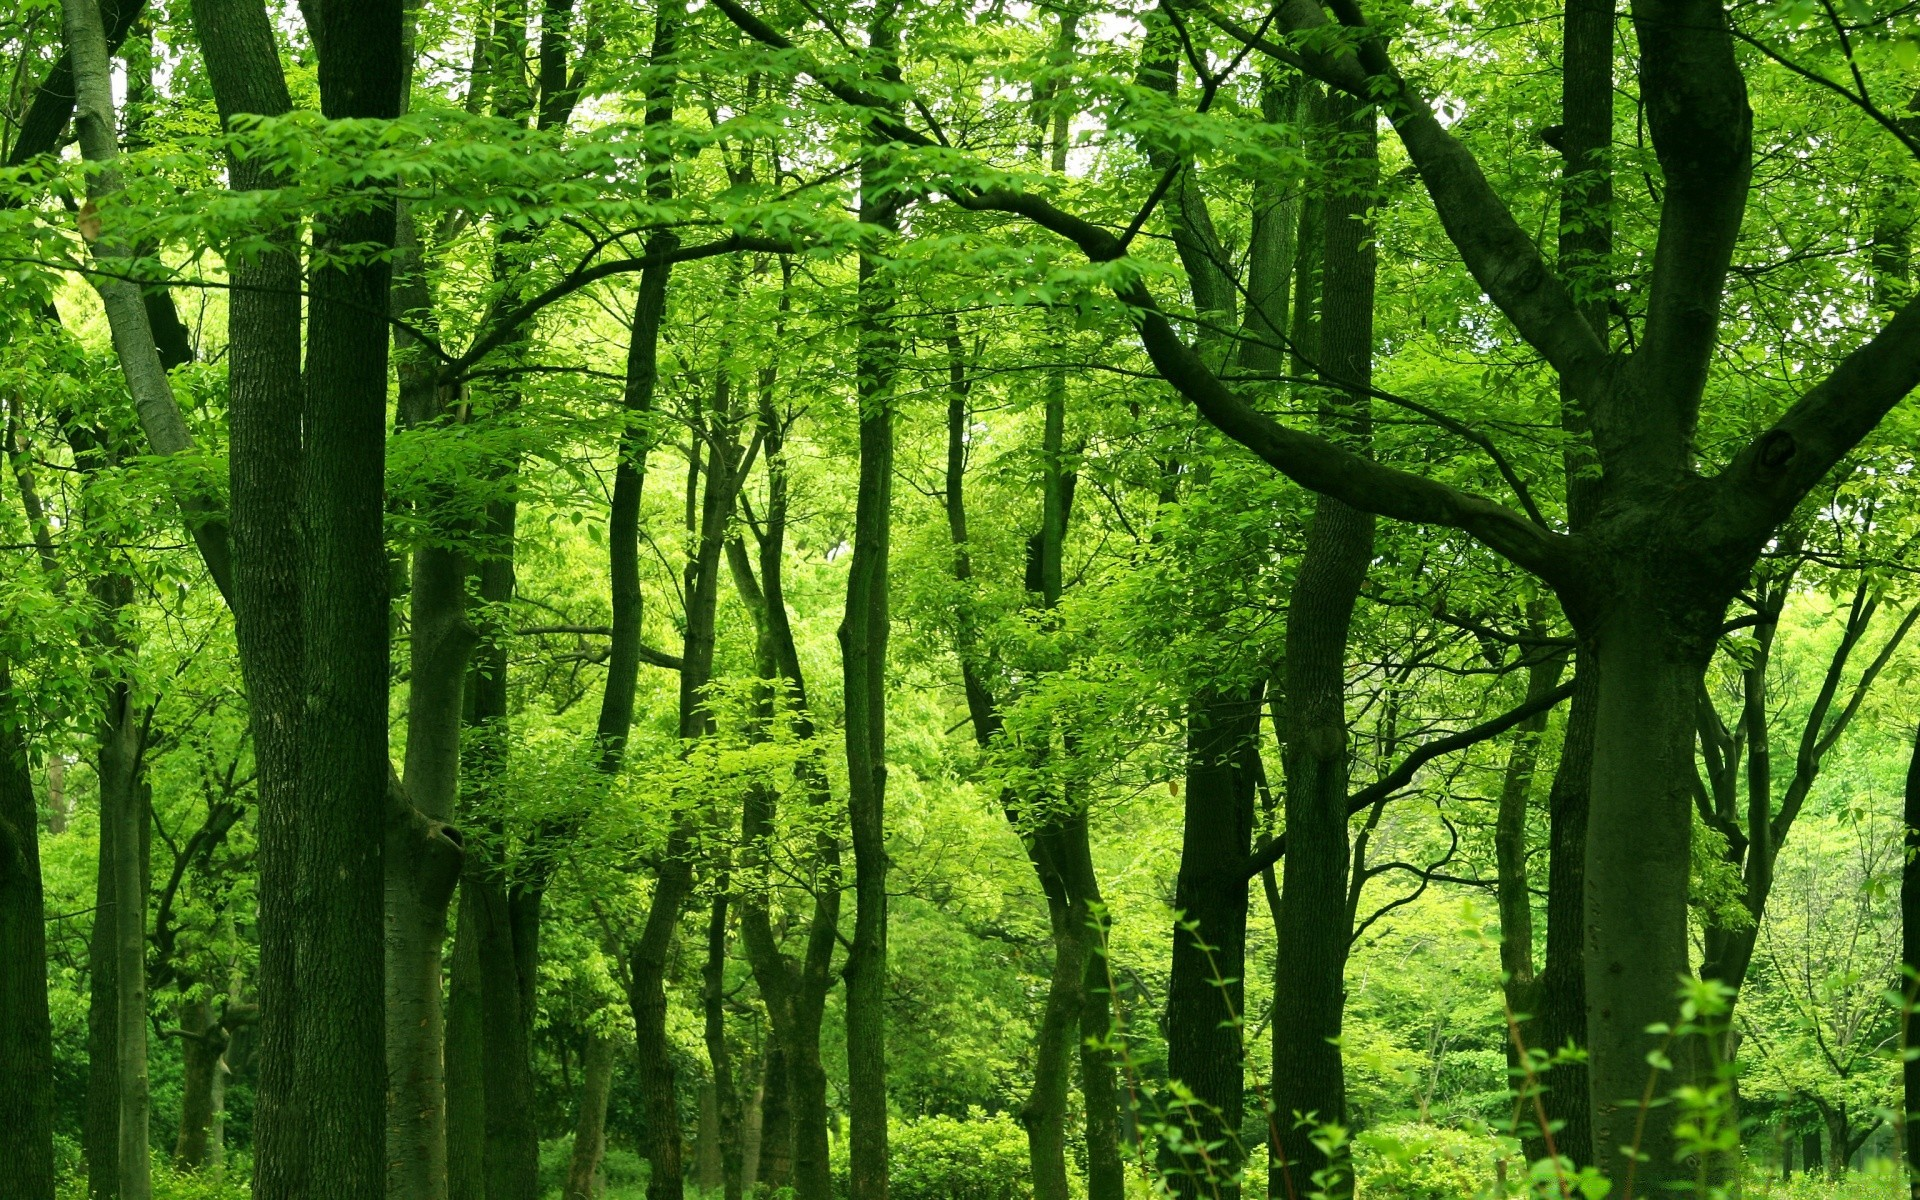 green forest hindu personals Meet green forest senior singles at loveawake 100% free online dating site whatever your age we can help you meet mature men and women from green forest, arkansas, united states no tricks and hidden charges browse green forest personals of men and women without payment.